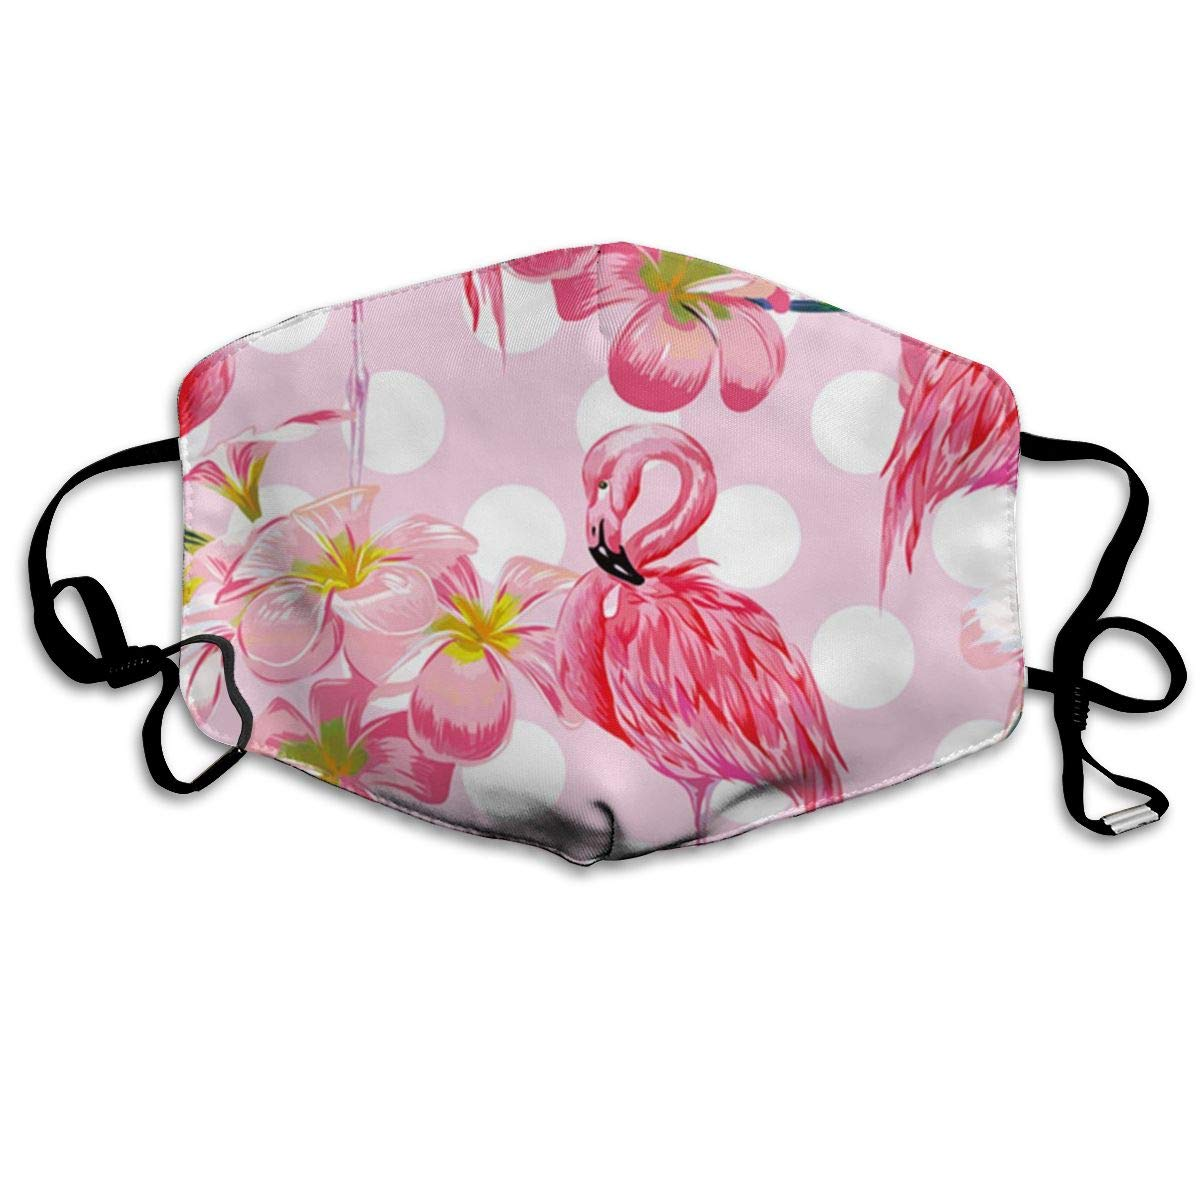 Mouth Mask Flamingo Bird Polka Dot Print Masks - Breathable Adjustable Windproof Mouth-Muffle, Camping Running For Women And Men